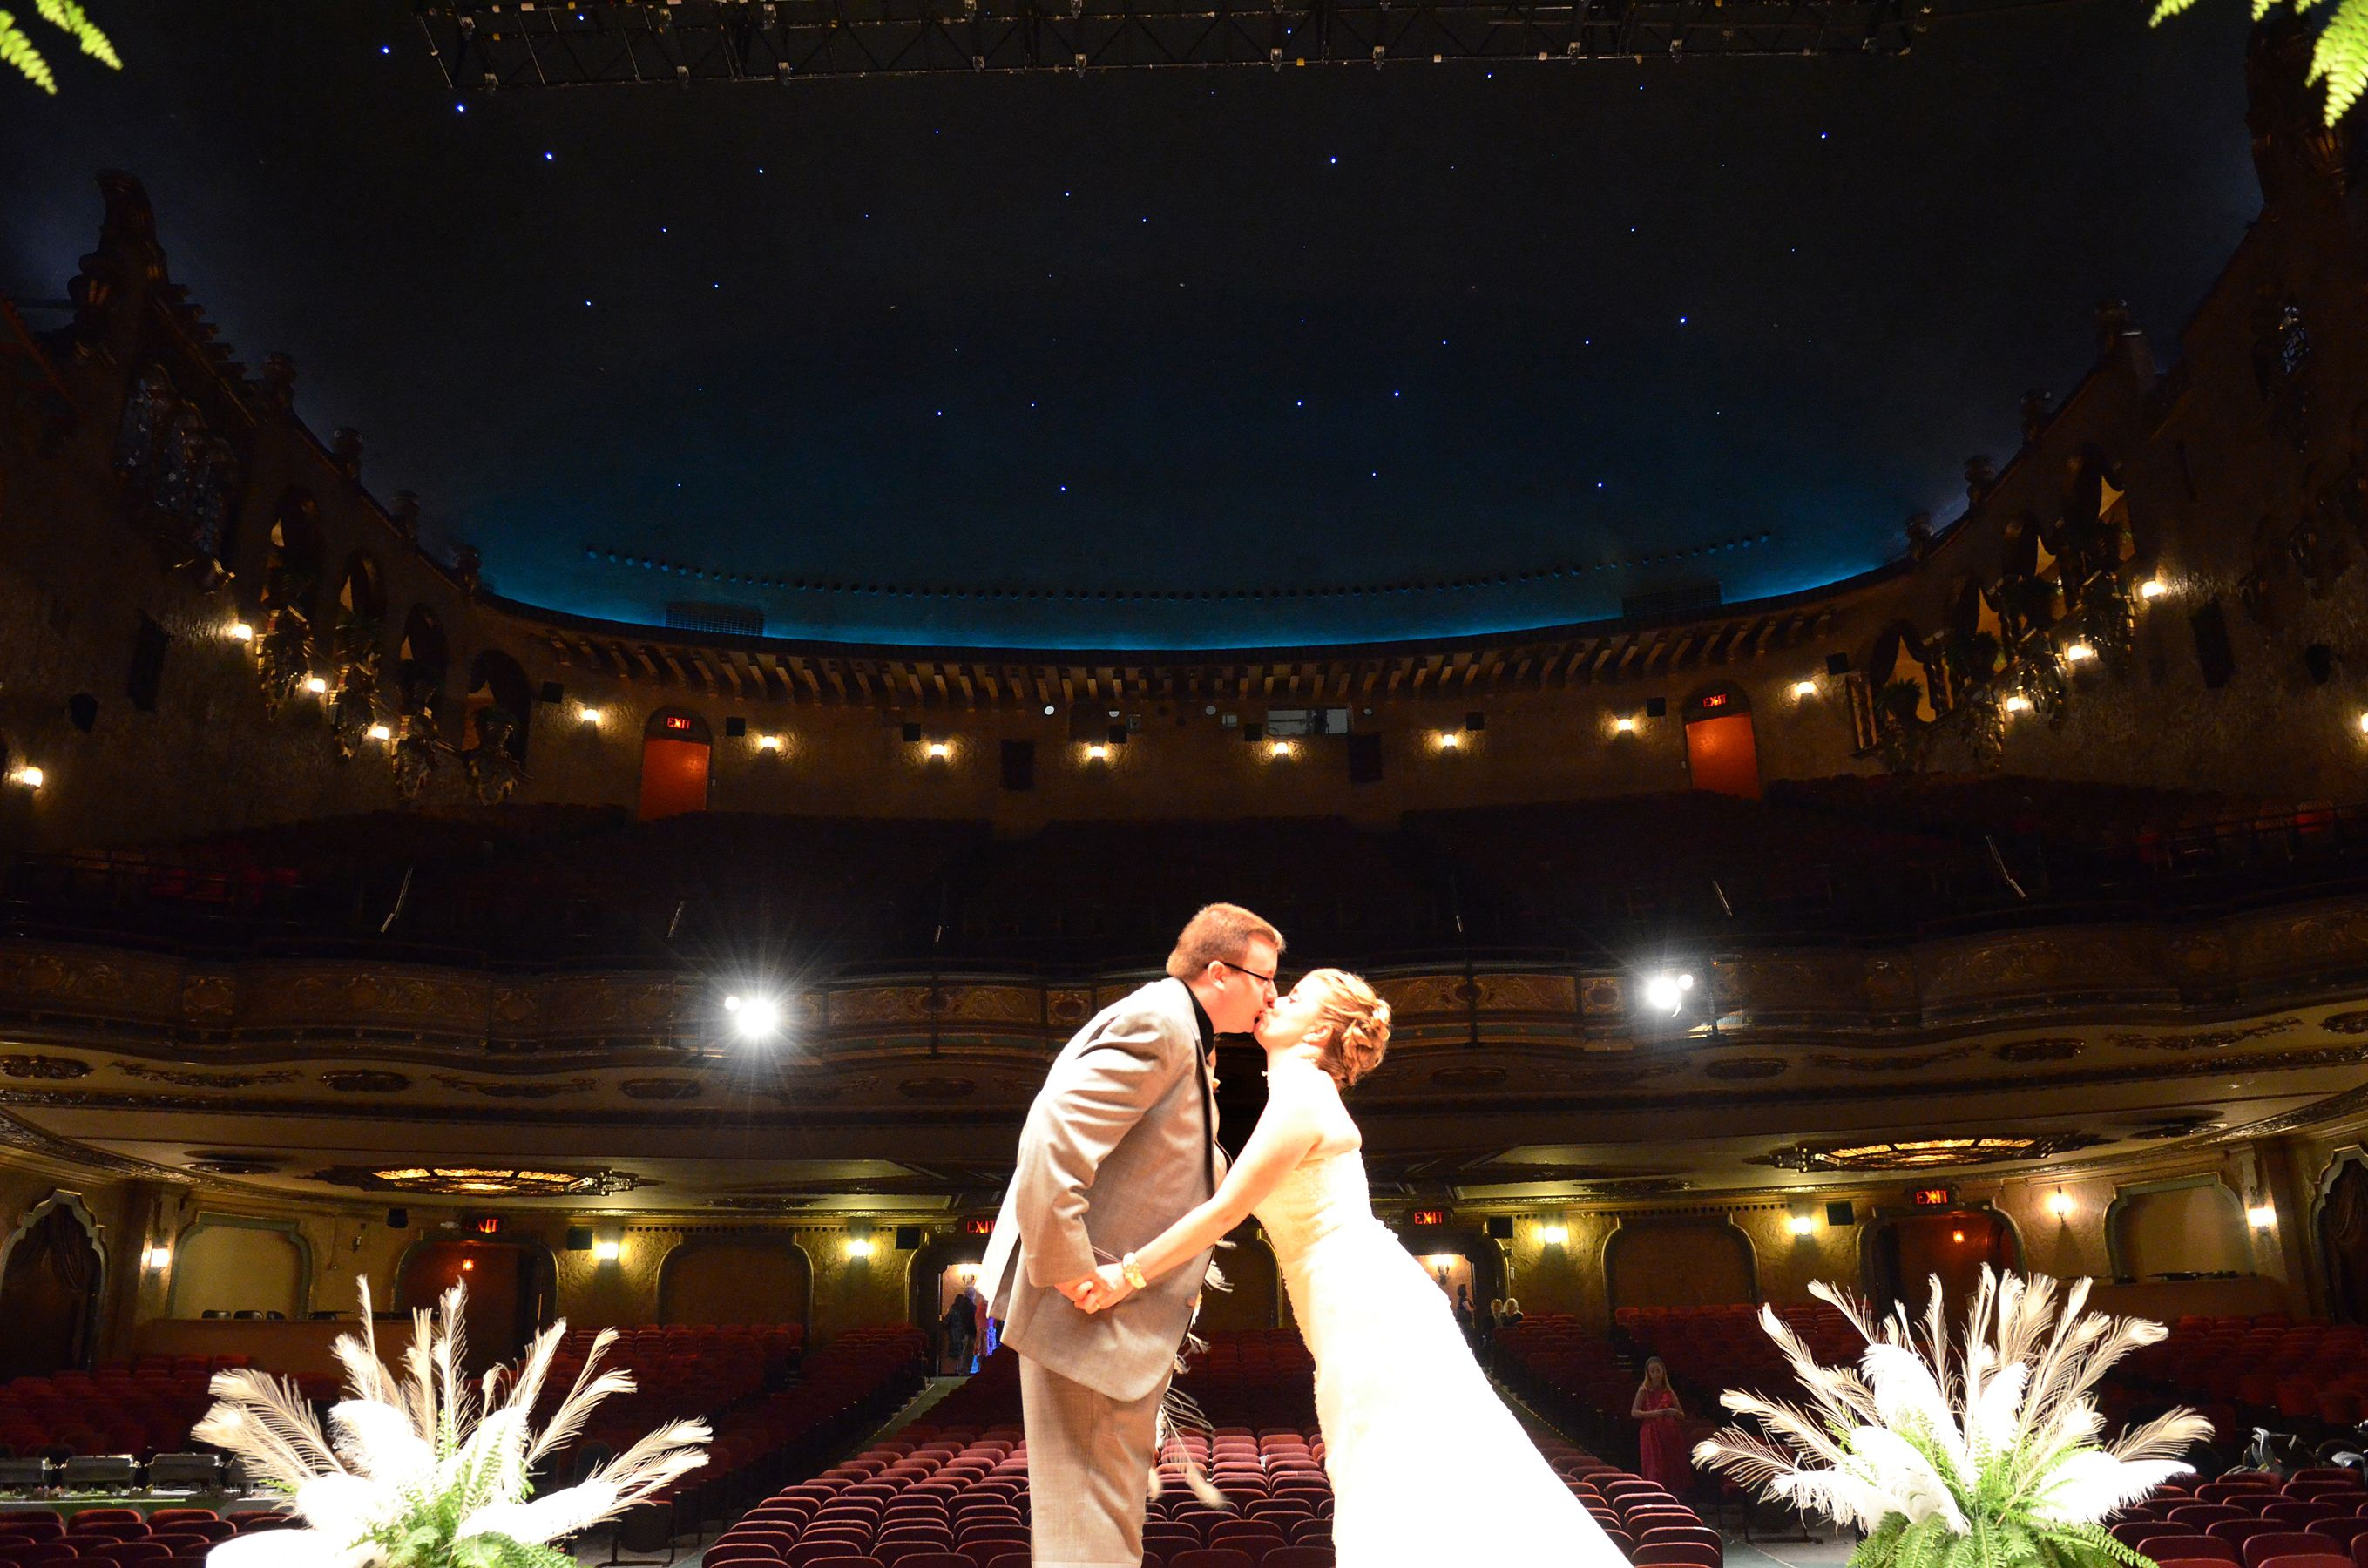 Wedding On Stage At The Keith Albee Theater In Huntington West Virginia Woodstock Wedding Peacock Wedding Wedding